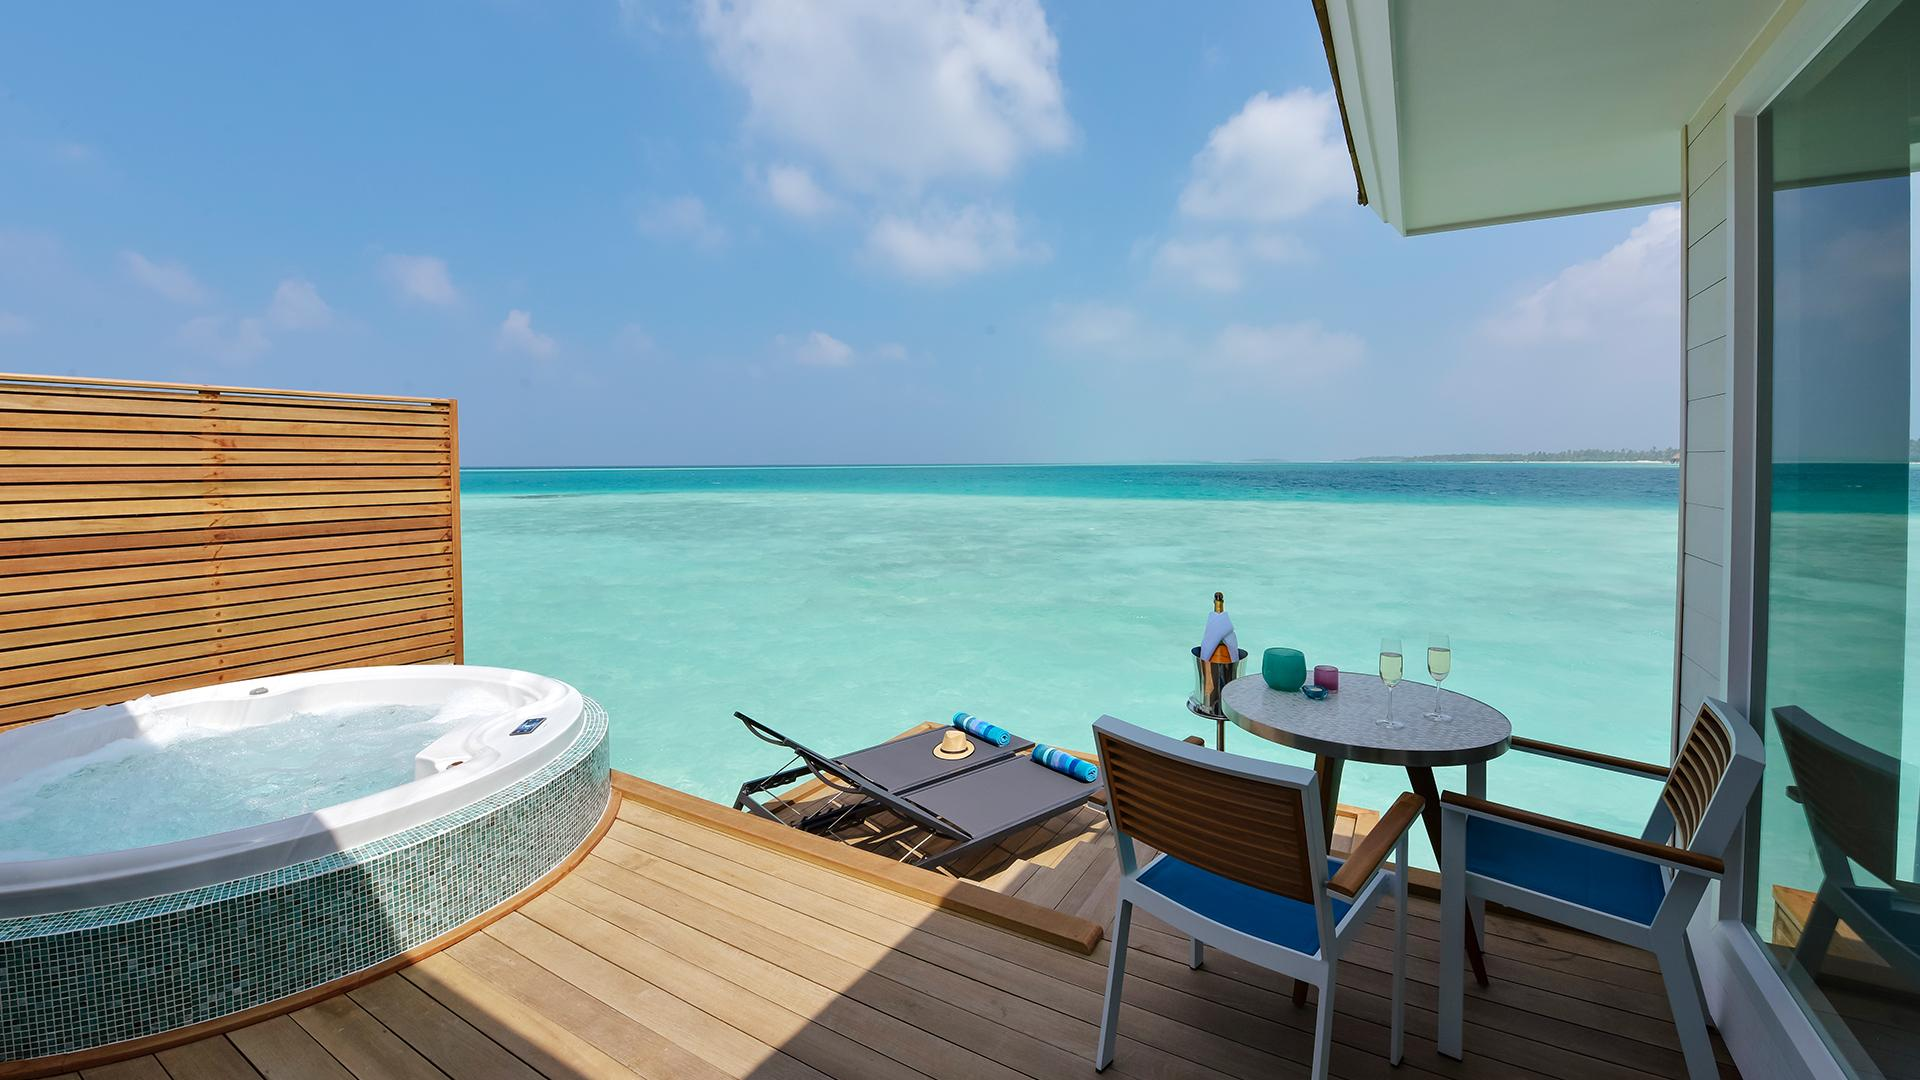 Aqua Villa with Swirl Pool image 1 at Kandima Maldives by null, Central Province, Maldives